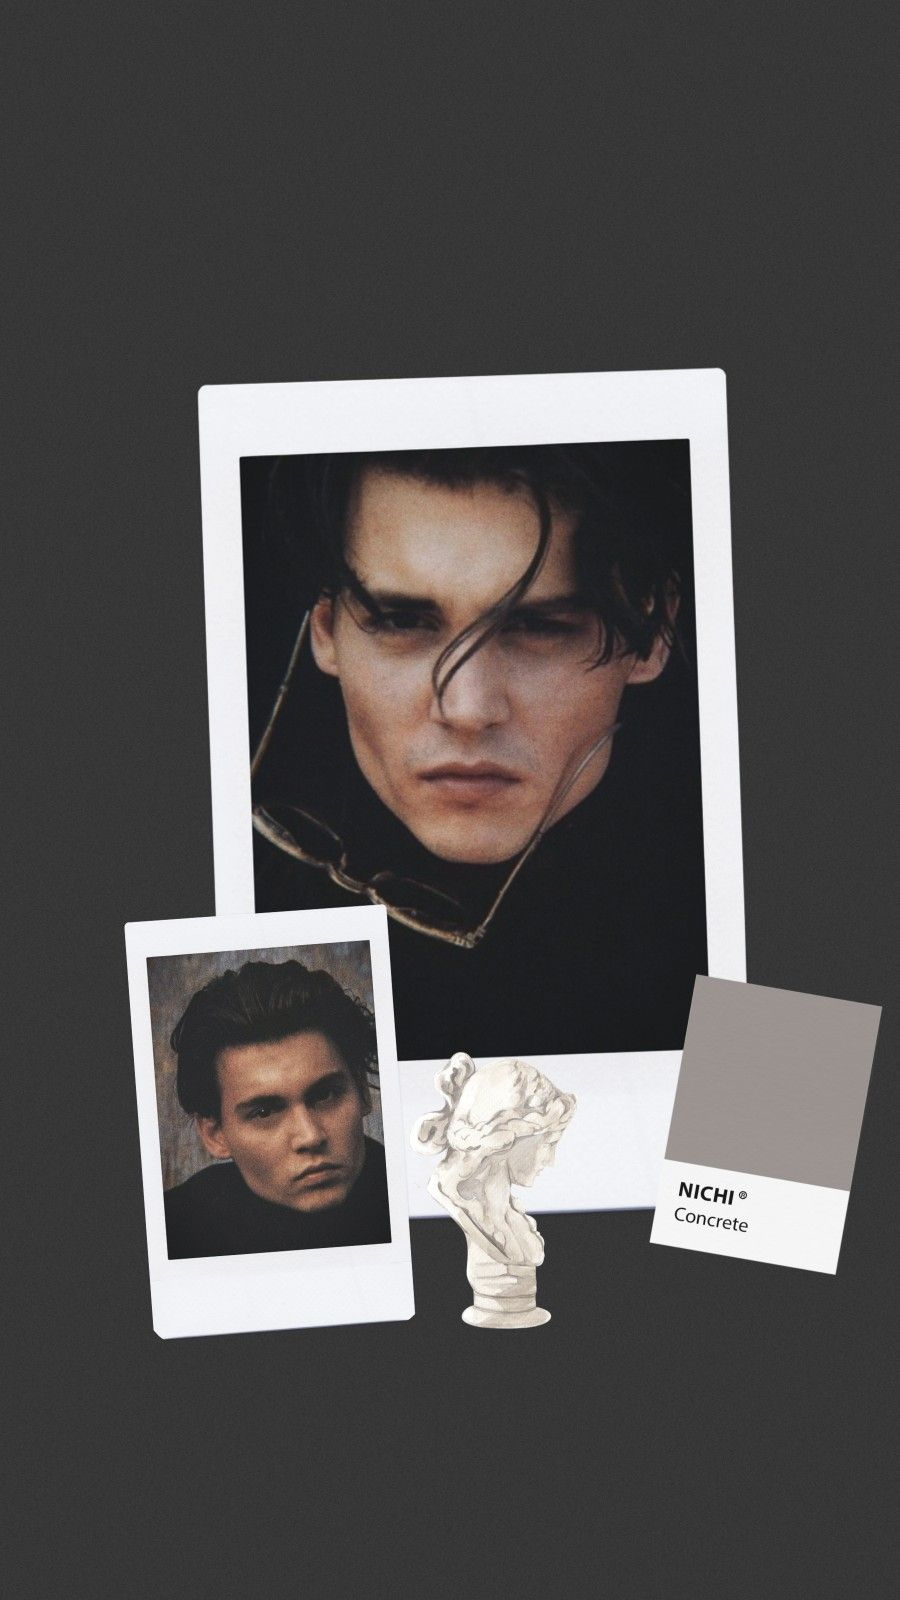 Johnny Depp Wallpaper Johnny Depp Wallpaper Young Johnny Depp Johnny Depp